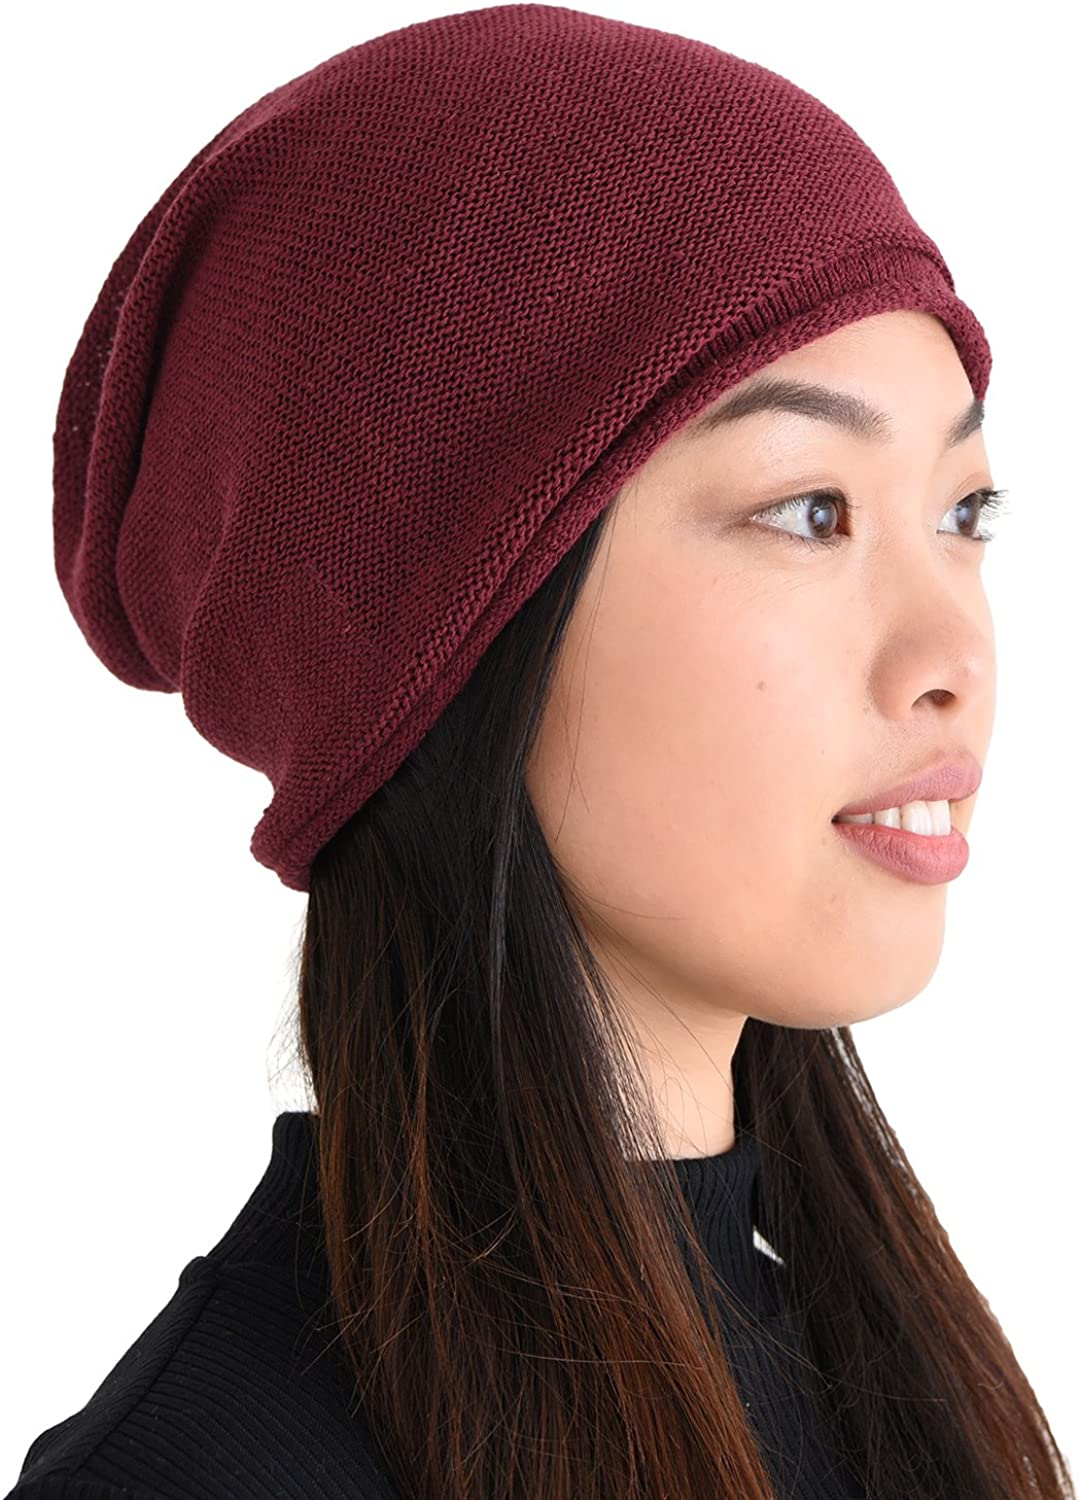 CHARM New arrival Silk Beanie Hat for Men Women Oversized - Cheap Slouchy and Chem